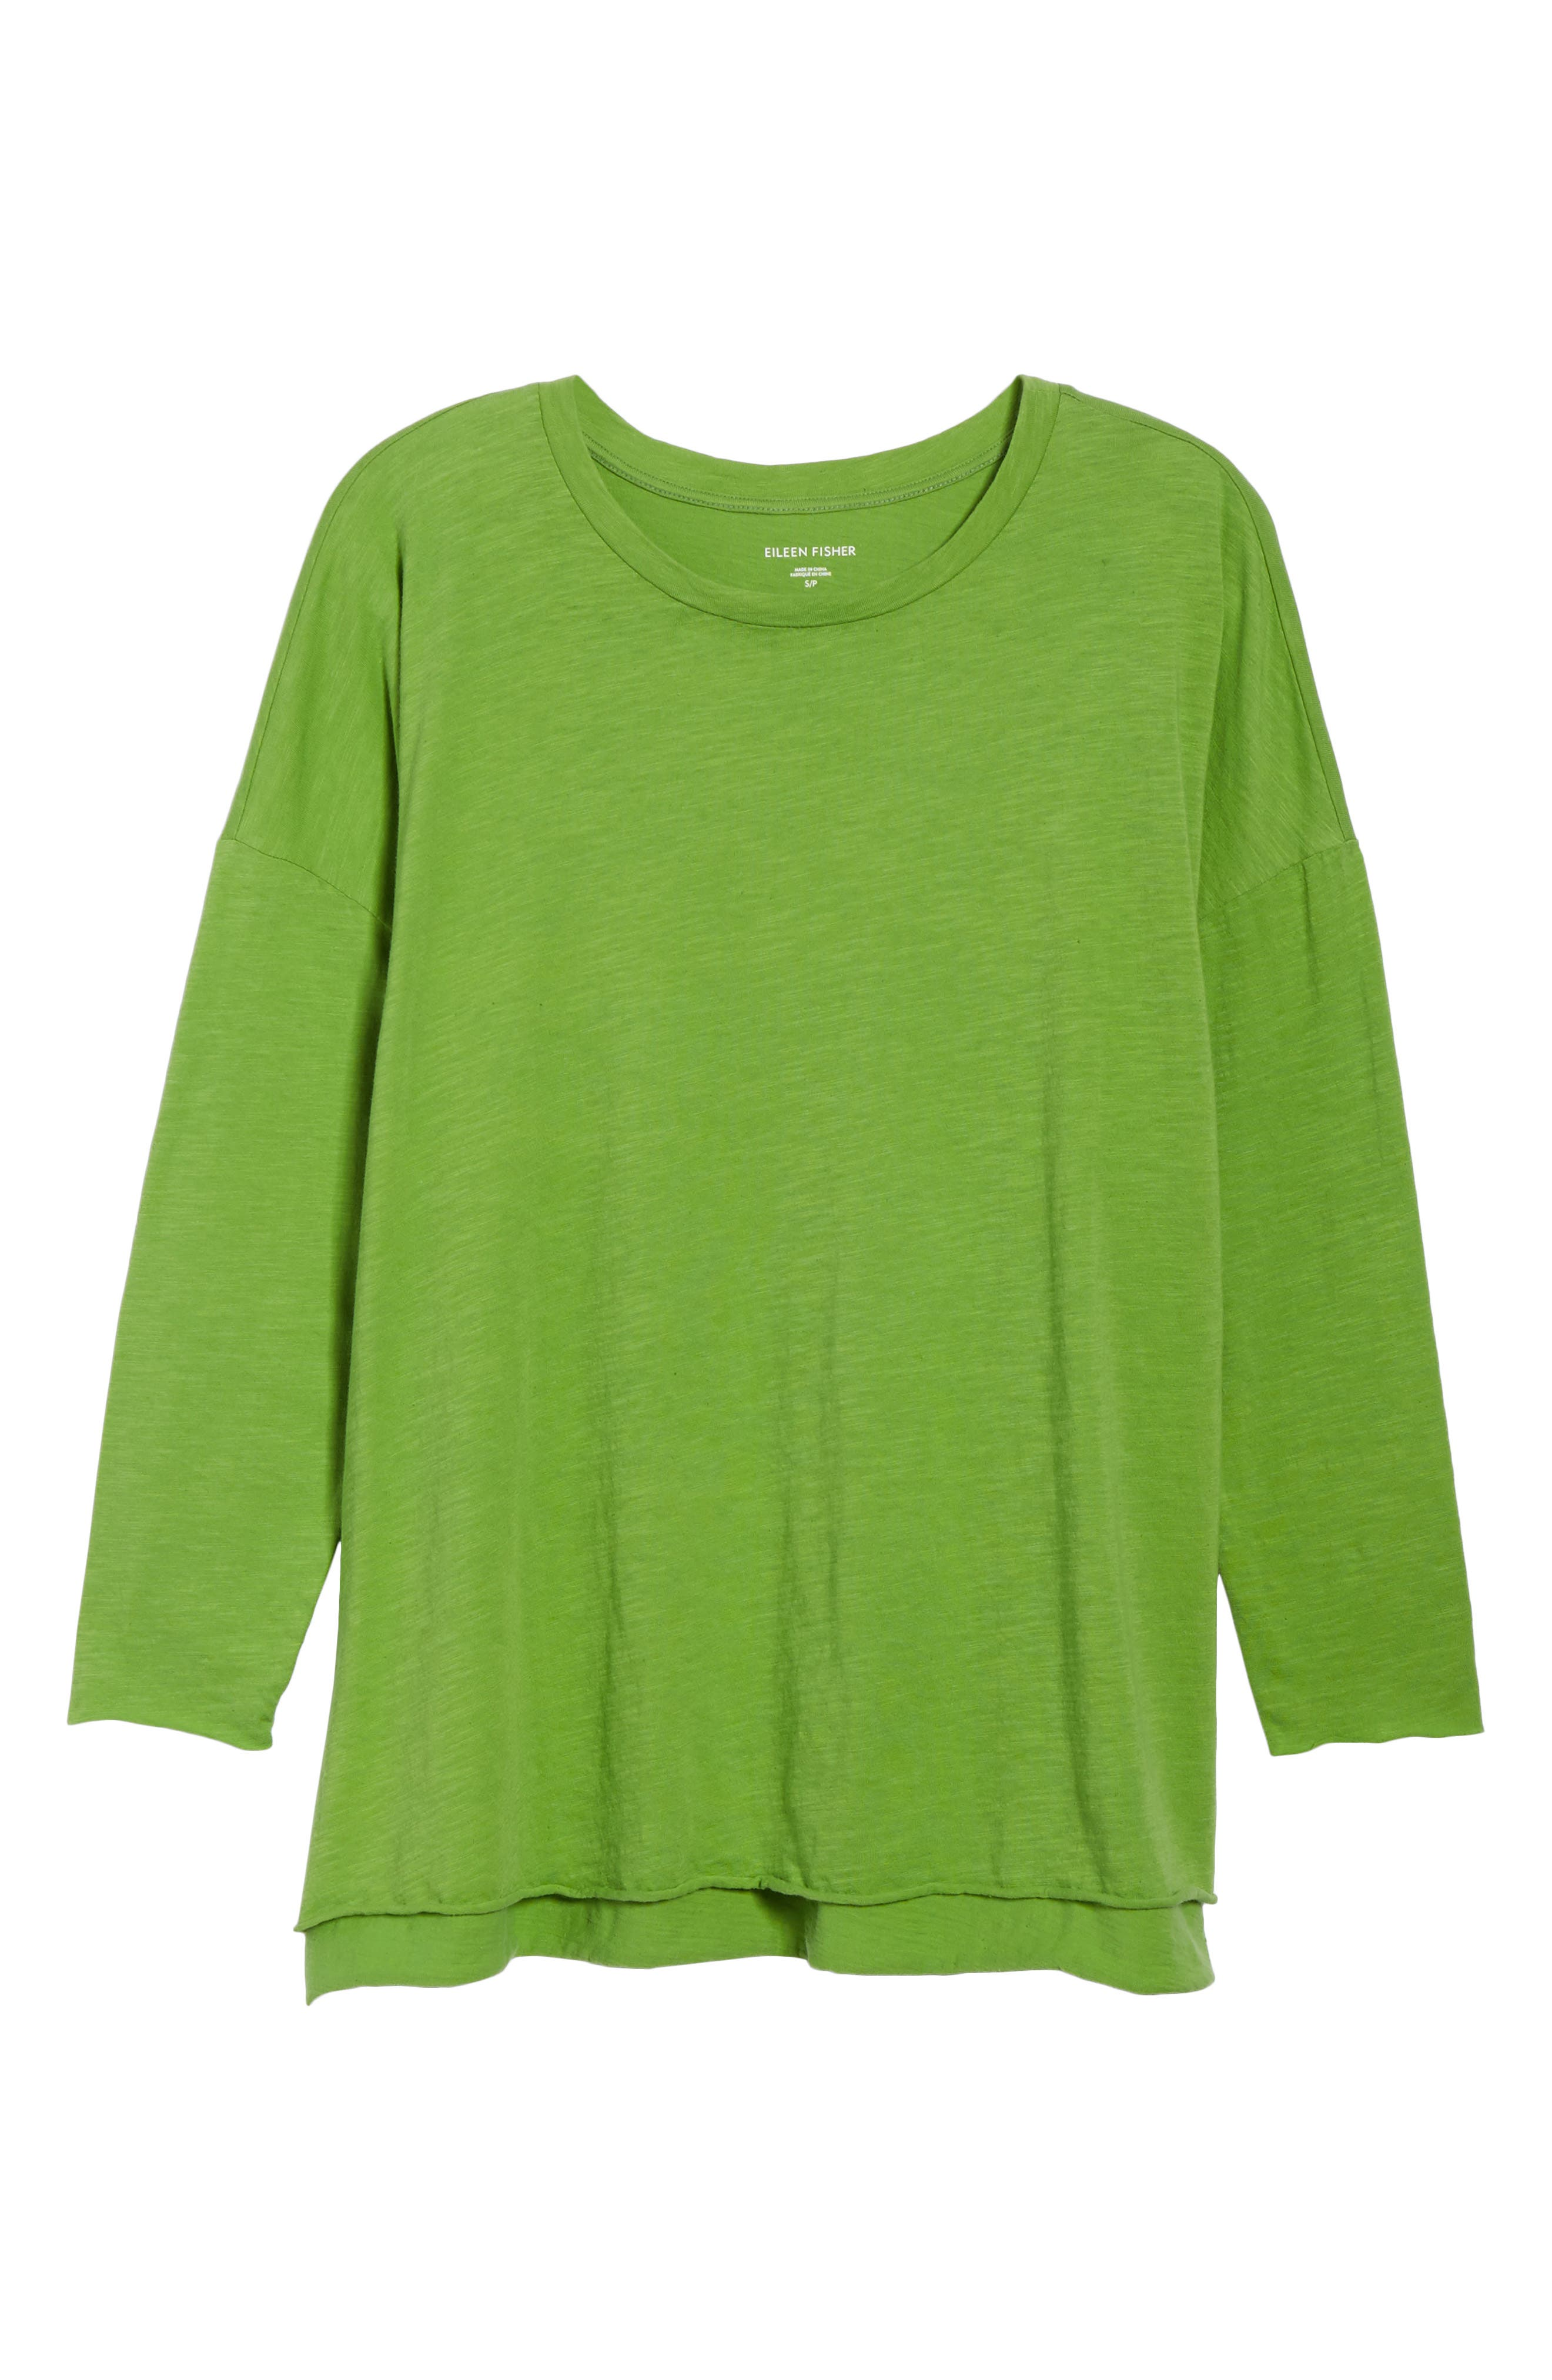 Organic Cotton Knit Top,                             Alternate thumbnail 6, color,                             Apple